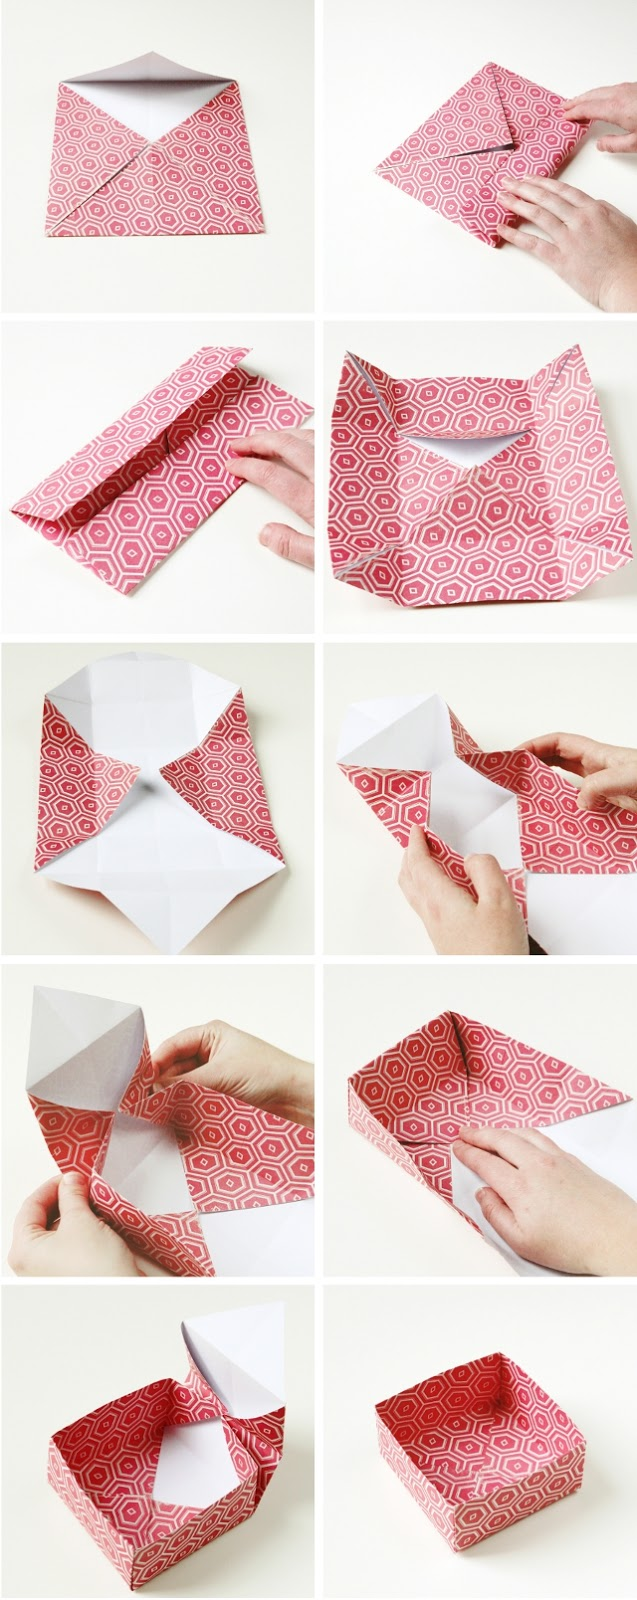 DIY ORIGAMI GIFT BOXES. | Gathering Beauty - photo#32